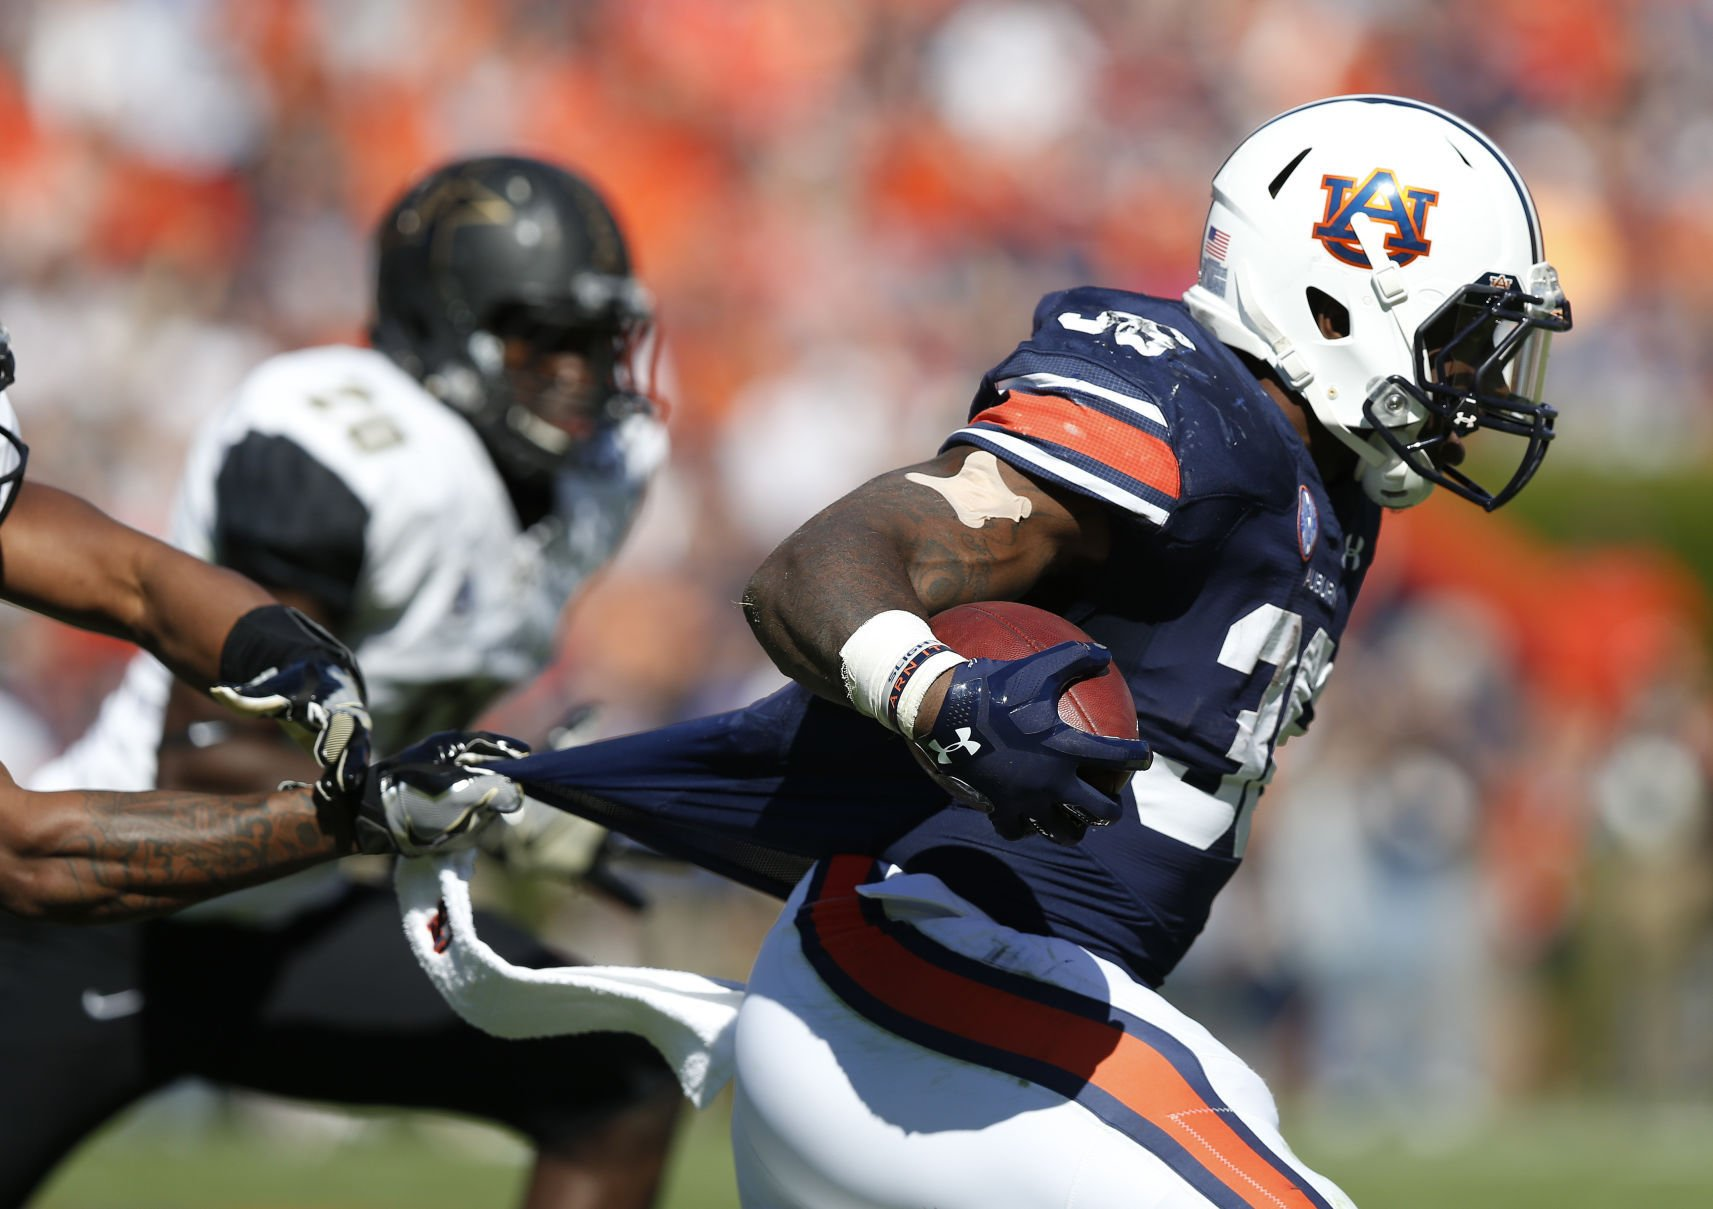 Auburn beats the Bulldogs 49-10